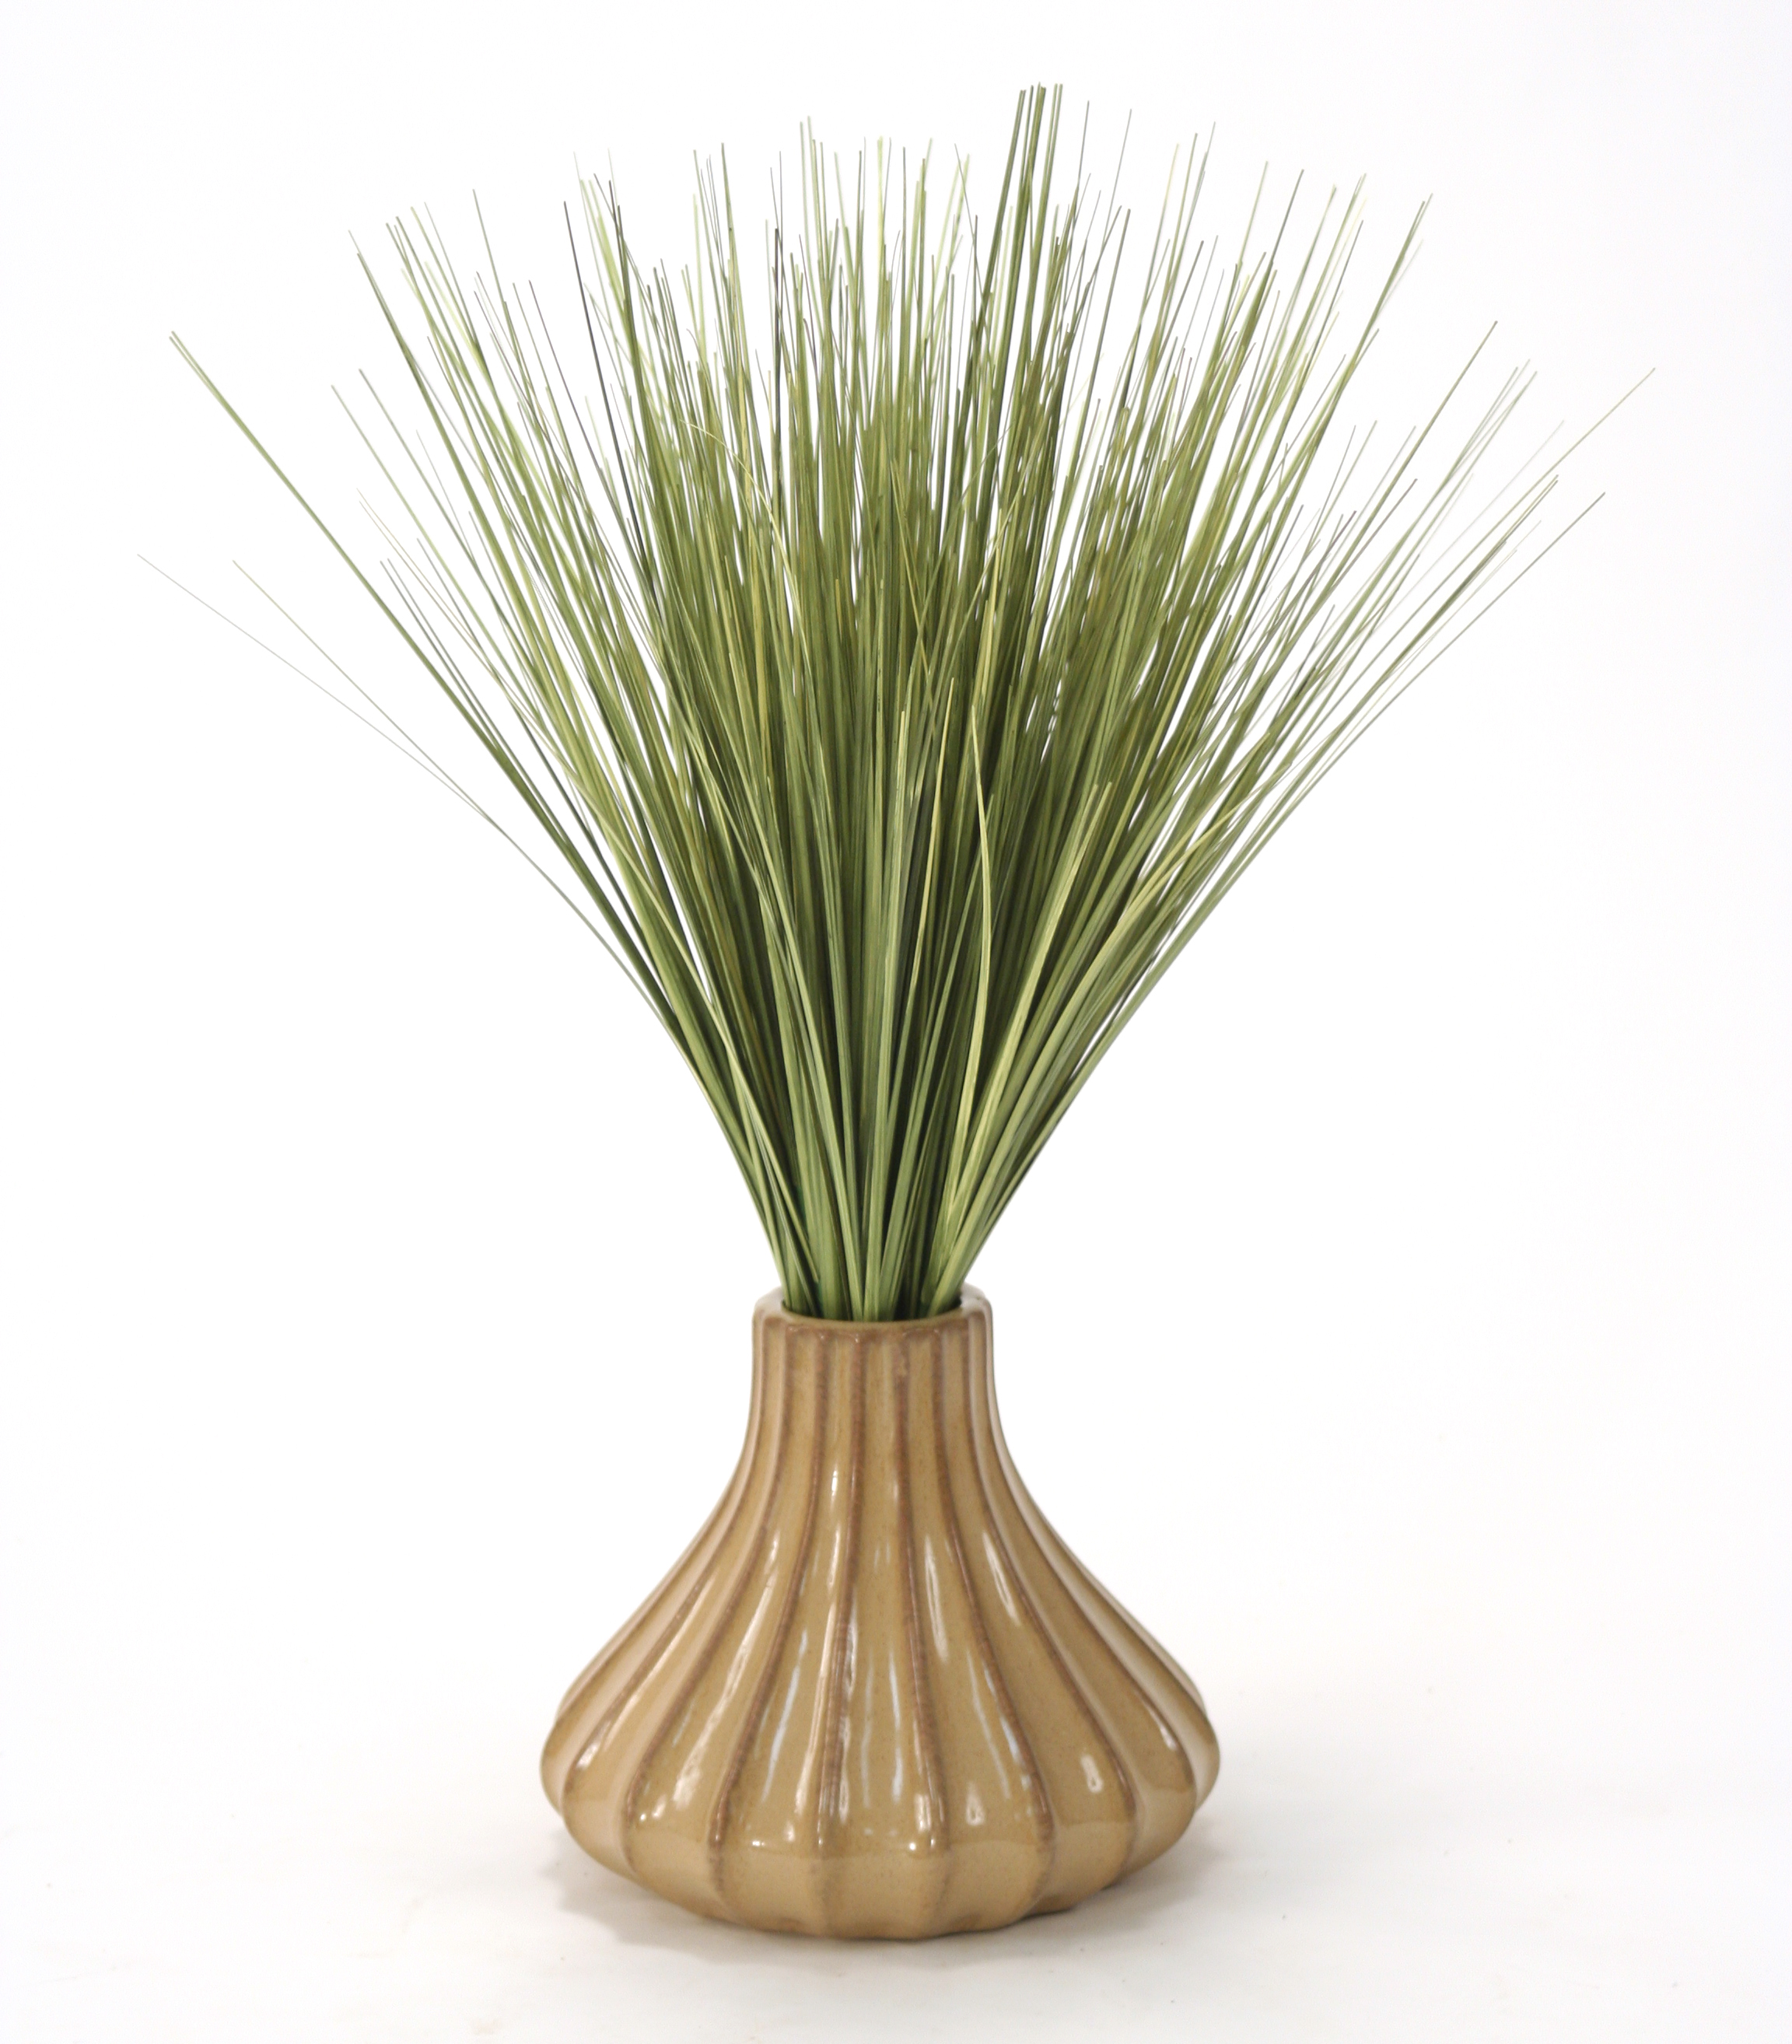 Silk Basil Green Grass in a Tan Fluted Ceramic Vase